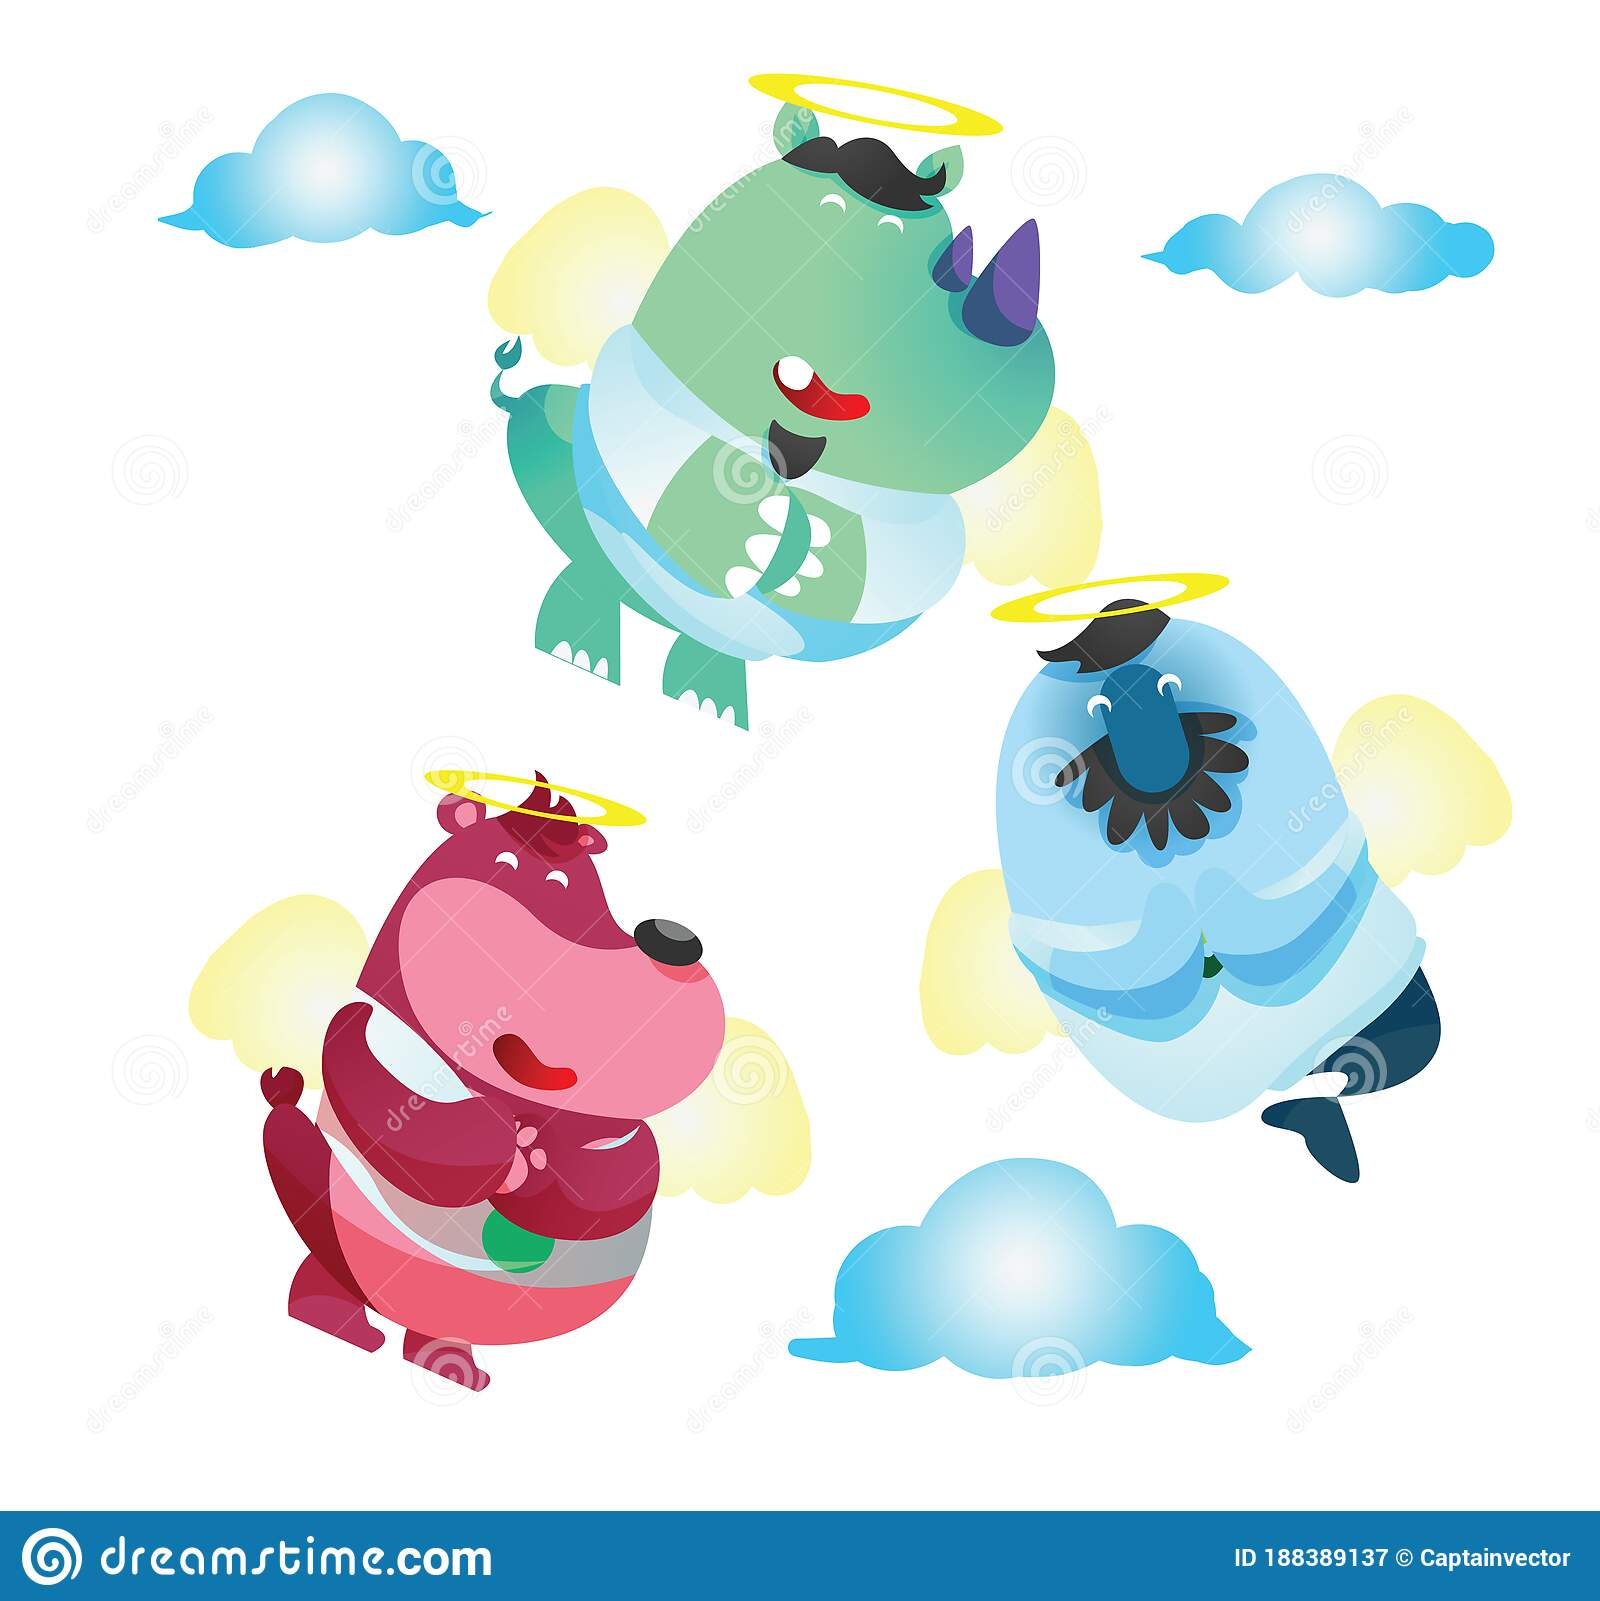 cartoon angel clipart & stock photography | Acclaim Images